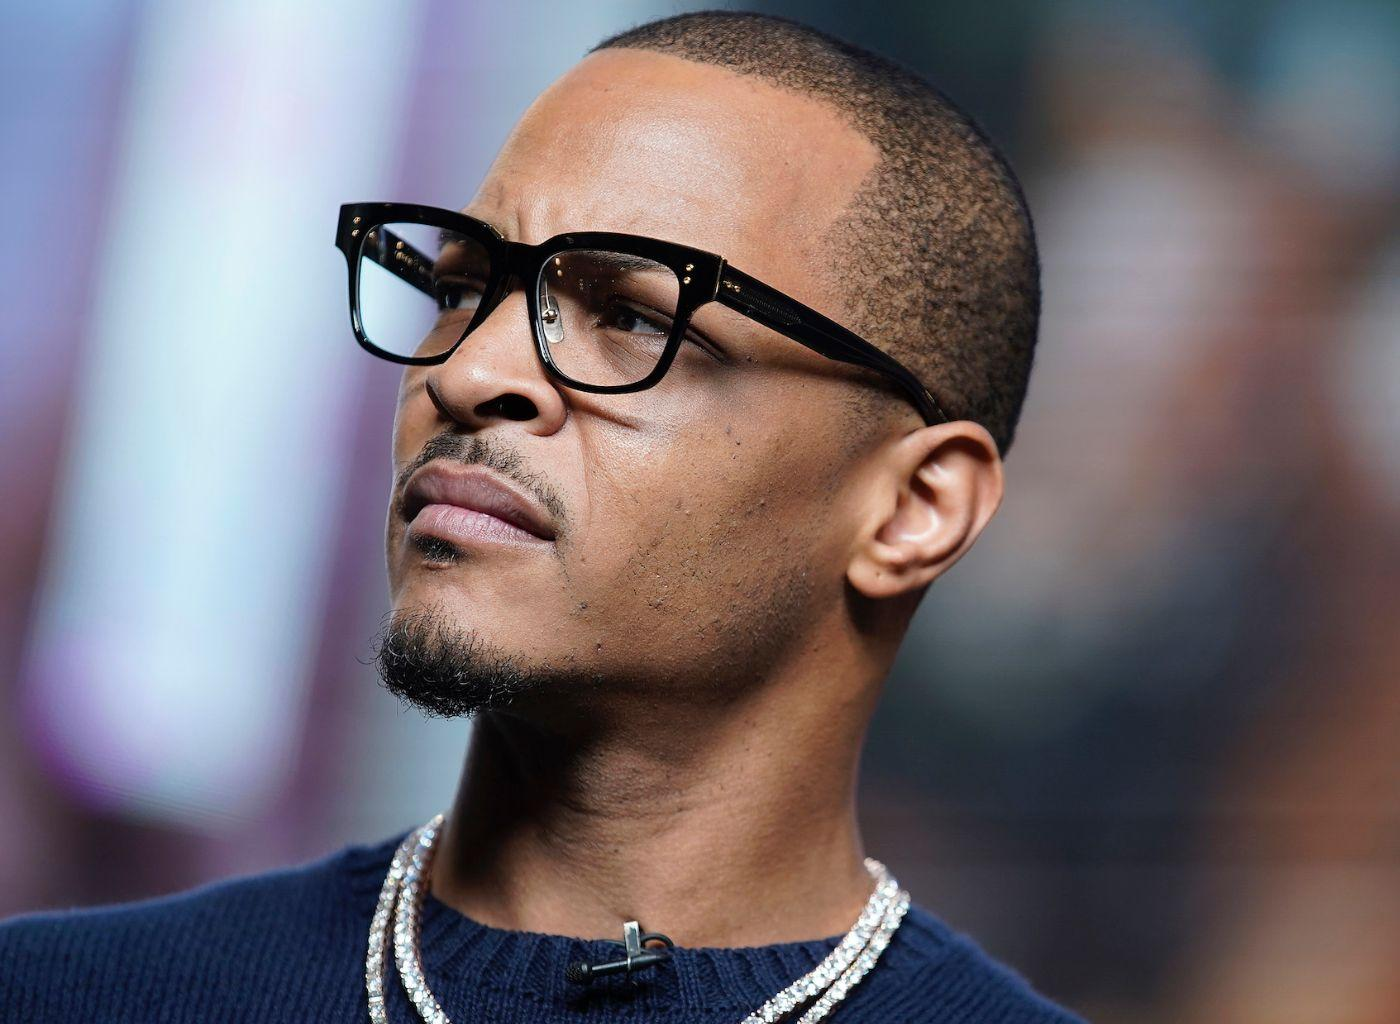 T.I. Shares A Message In The Memory Of Rev. C.T. Vivian And Rep. John Lewis